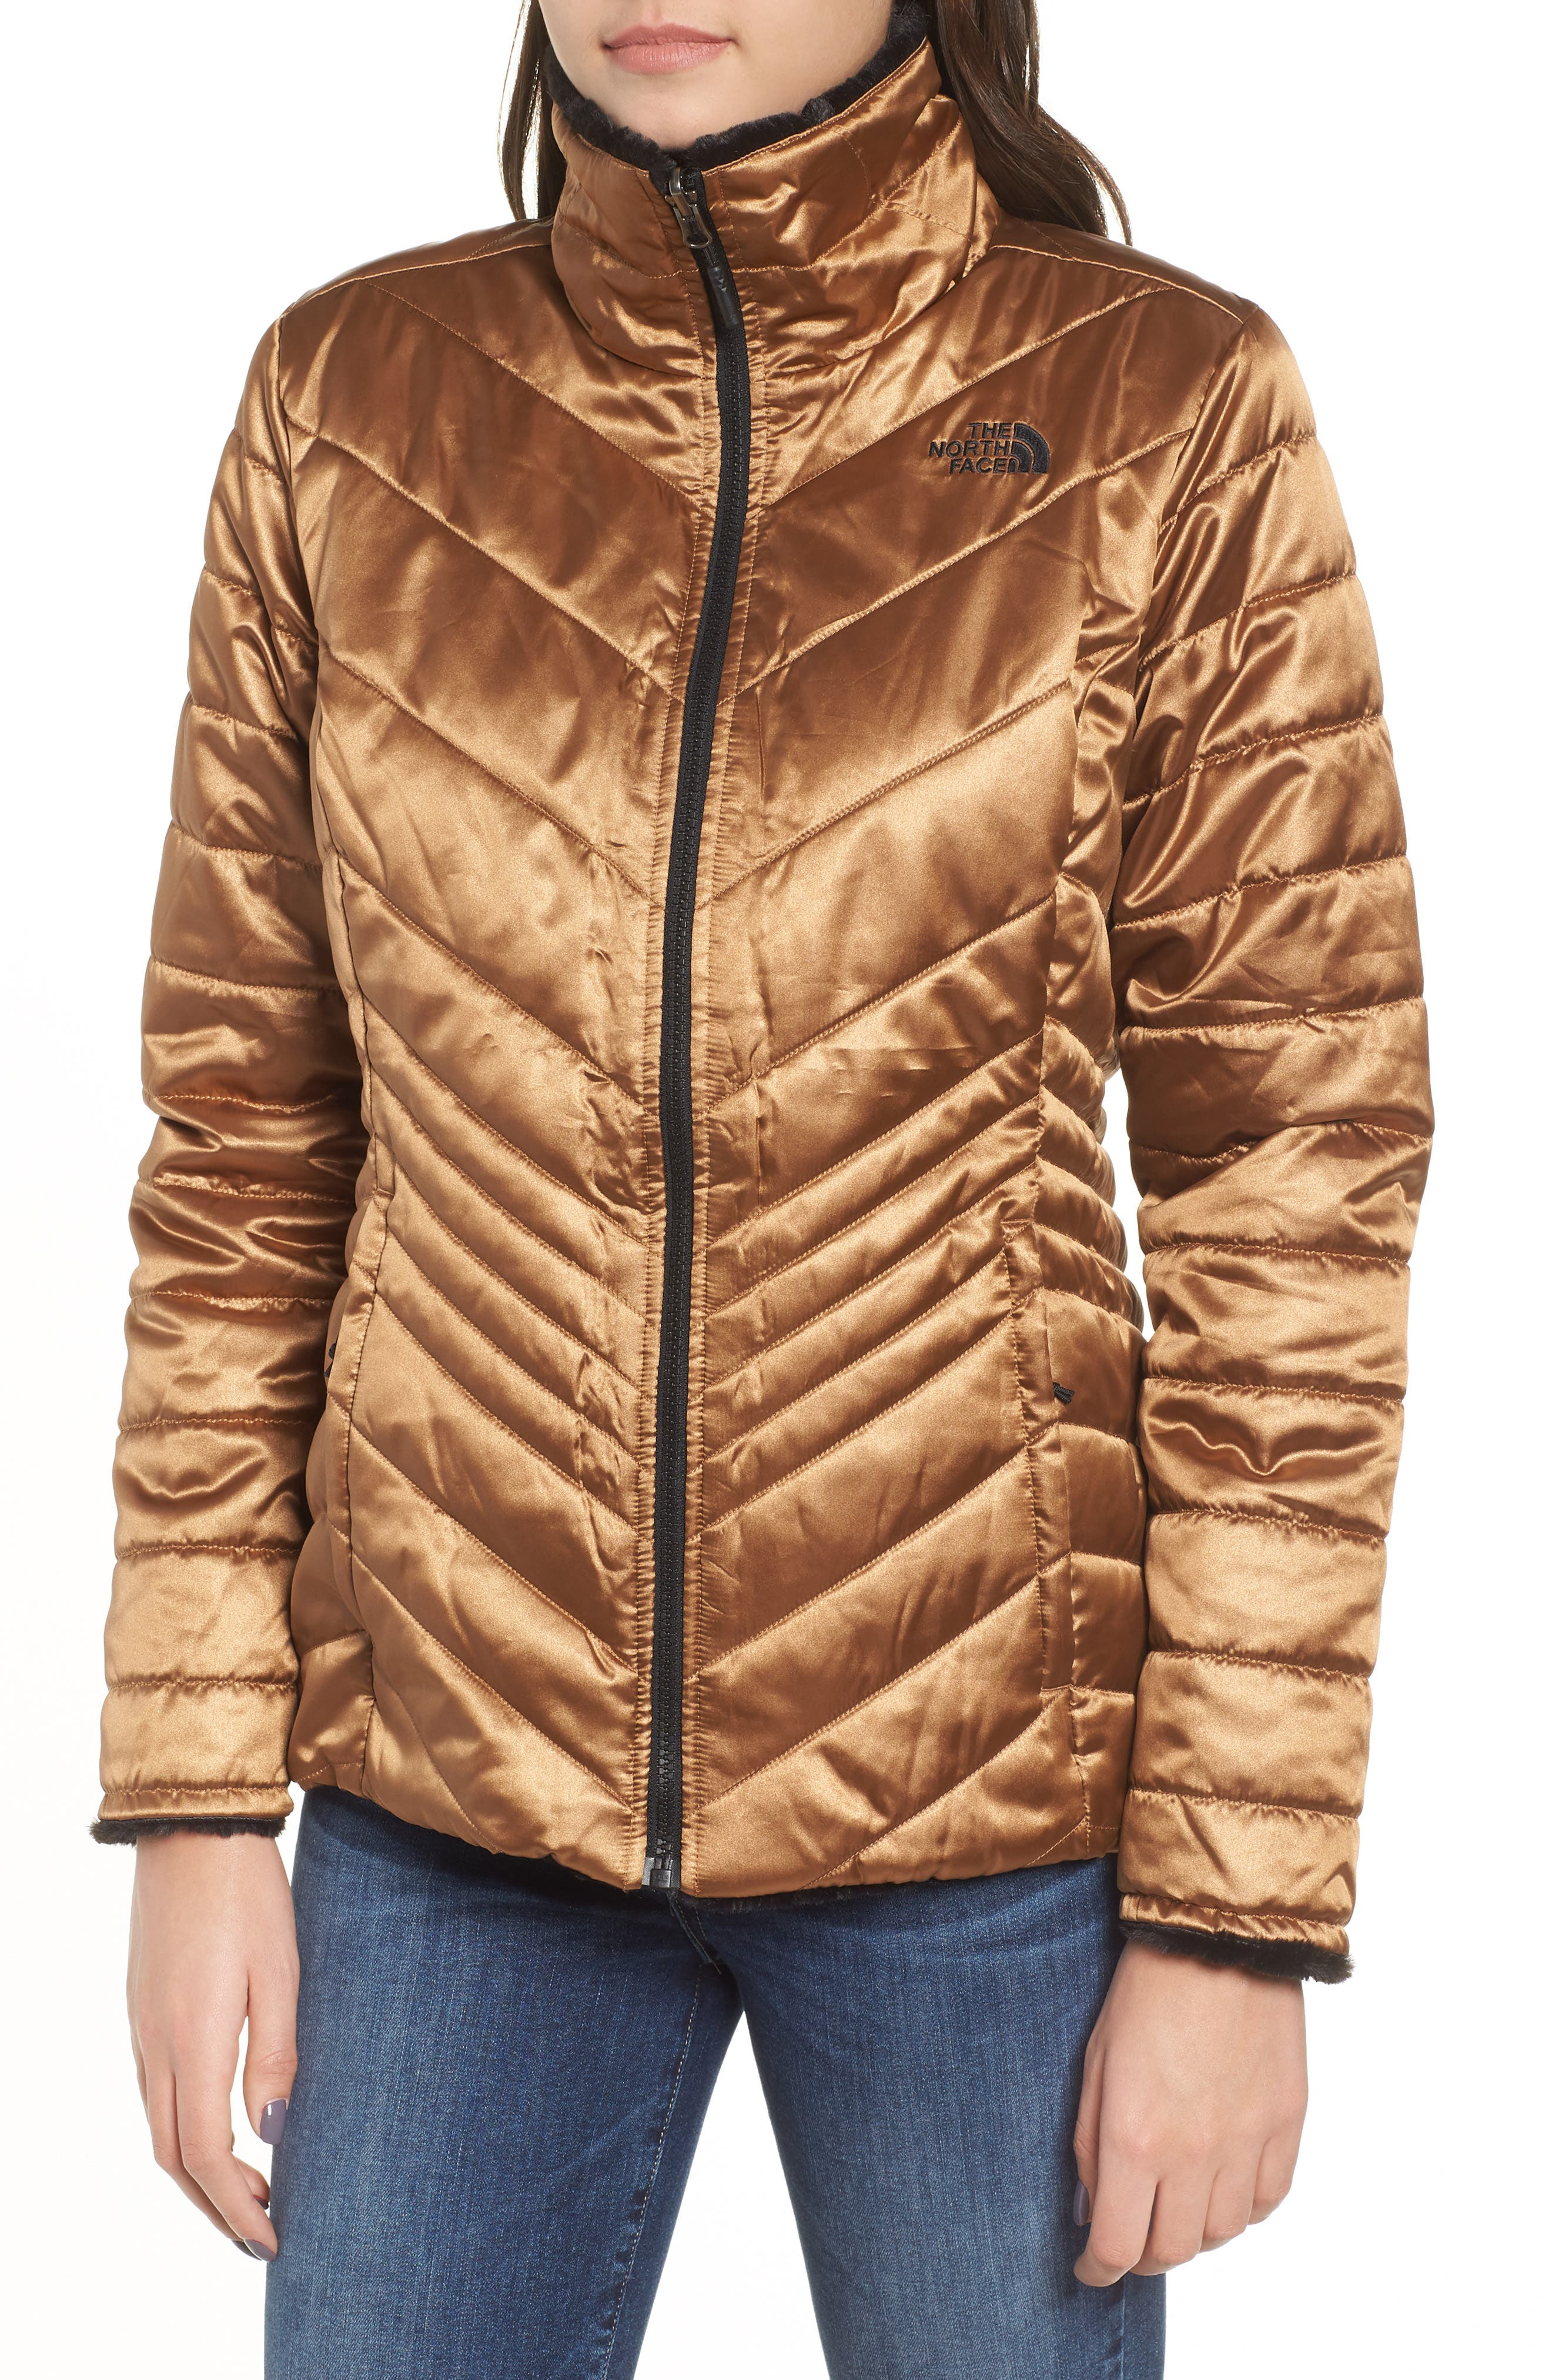 THE NORTH FACE, Mossbud Reversible Heatseeker<sup>™</sup> Wind Resistant Jacket, Alternate thumbnail 6, color, METALLIC COPPER/ TNF BLACK